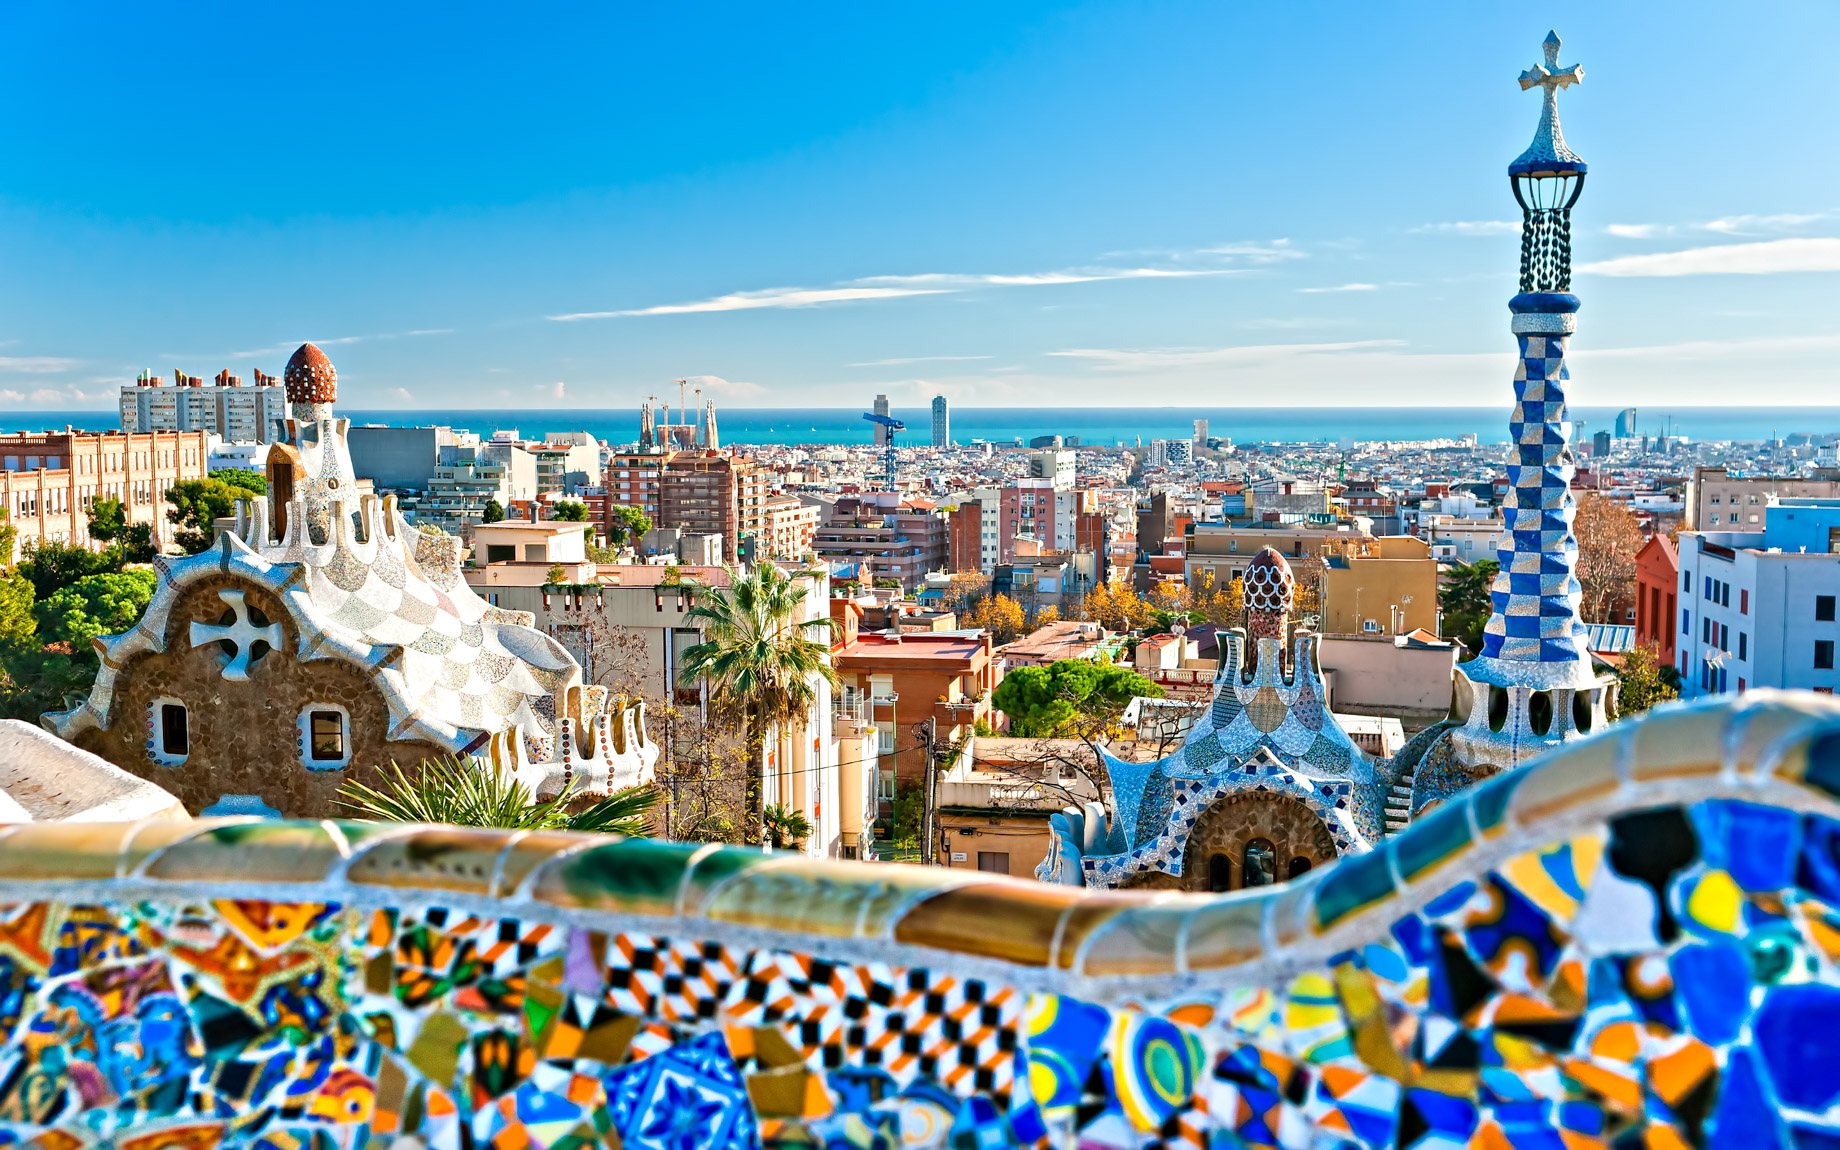 Barcelona, Spain - Top 5 European Countries for UK Pensioners Retiring Abroad